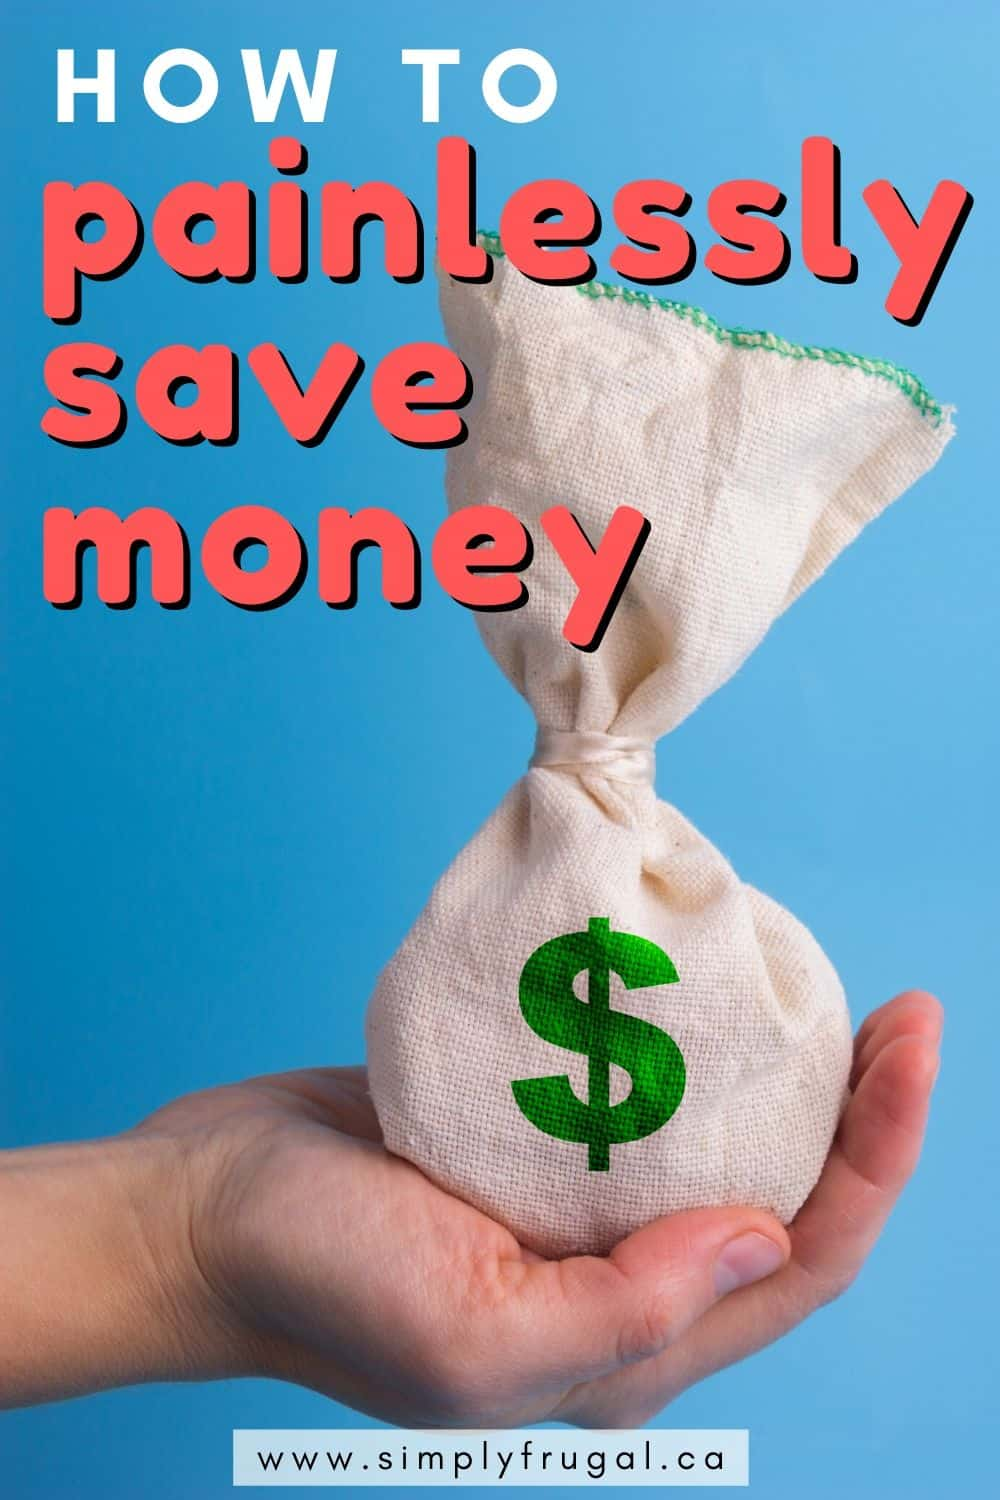 This is a great list of 6 ways to painlessly save money! The tips make saving your hard earned cash way easier!